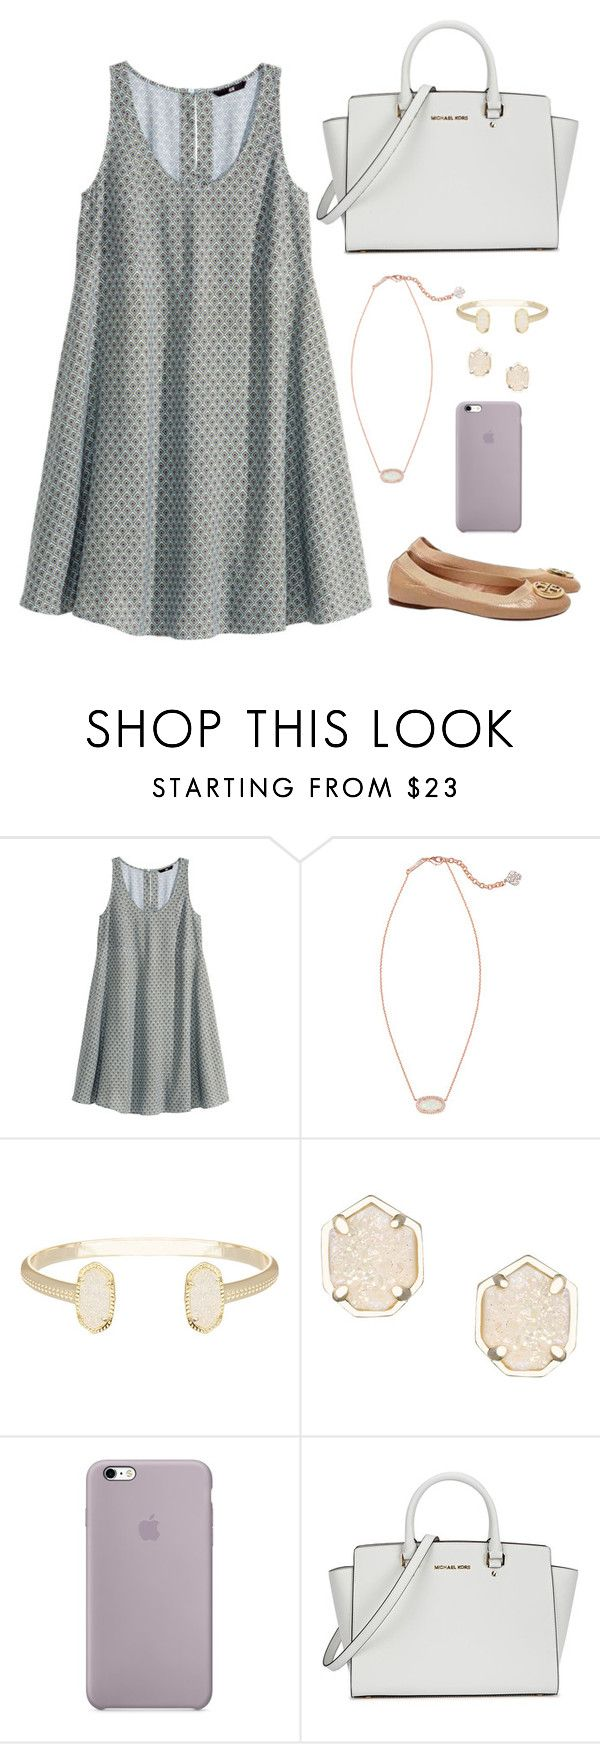 """"""""""" by apemb ❤ liked on Polyvore featuring H&M, Kendra Scott, Michael Kors and Tory Burch"""